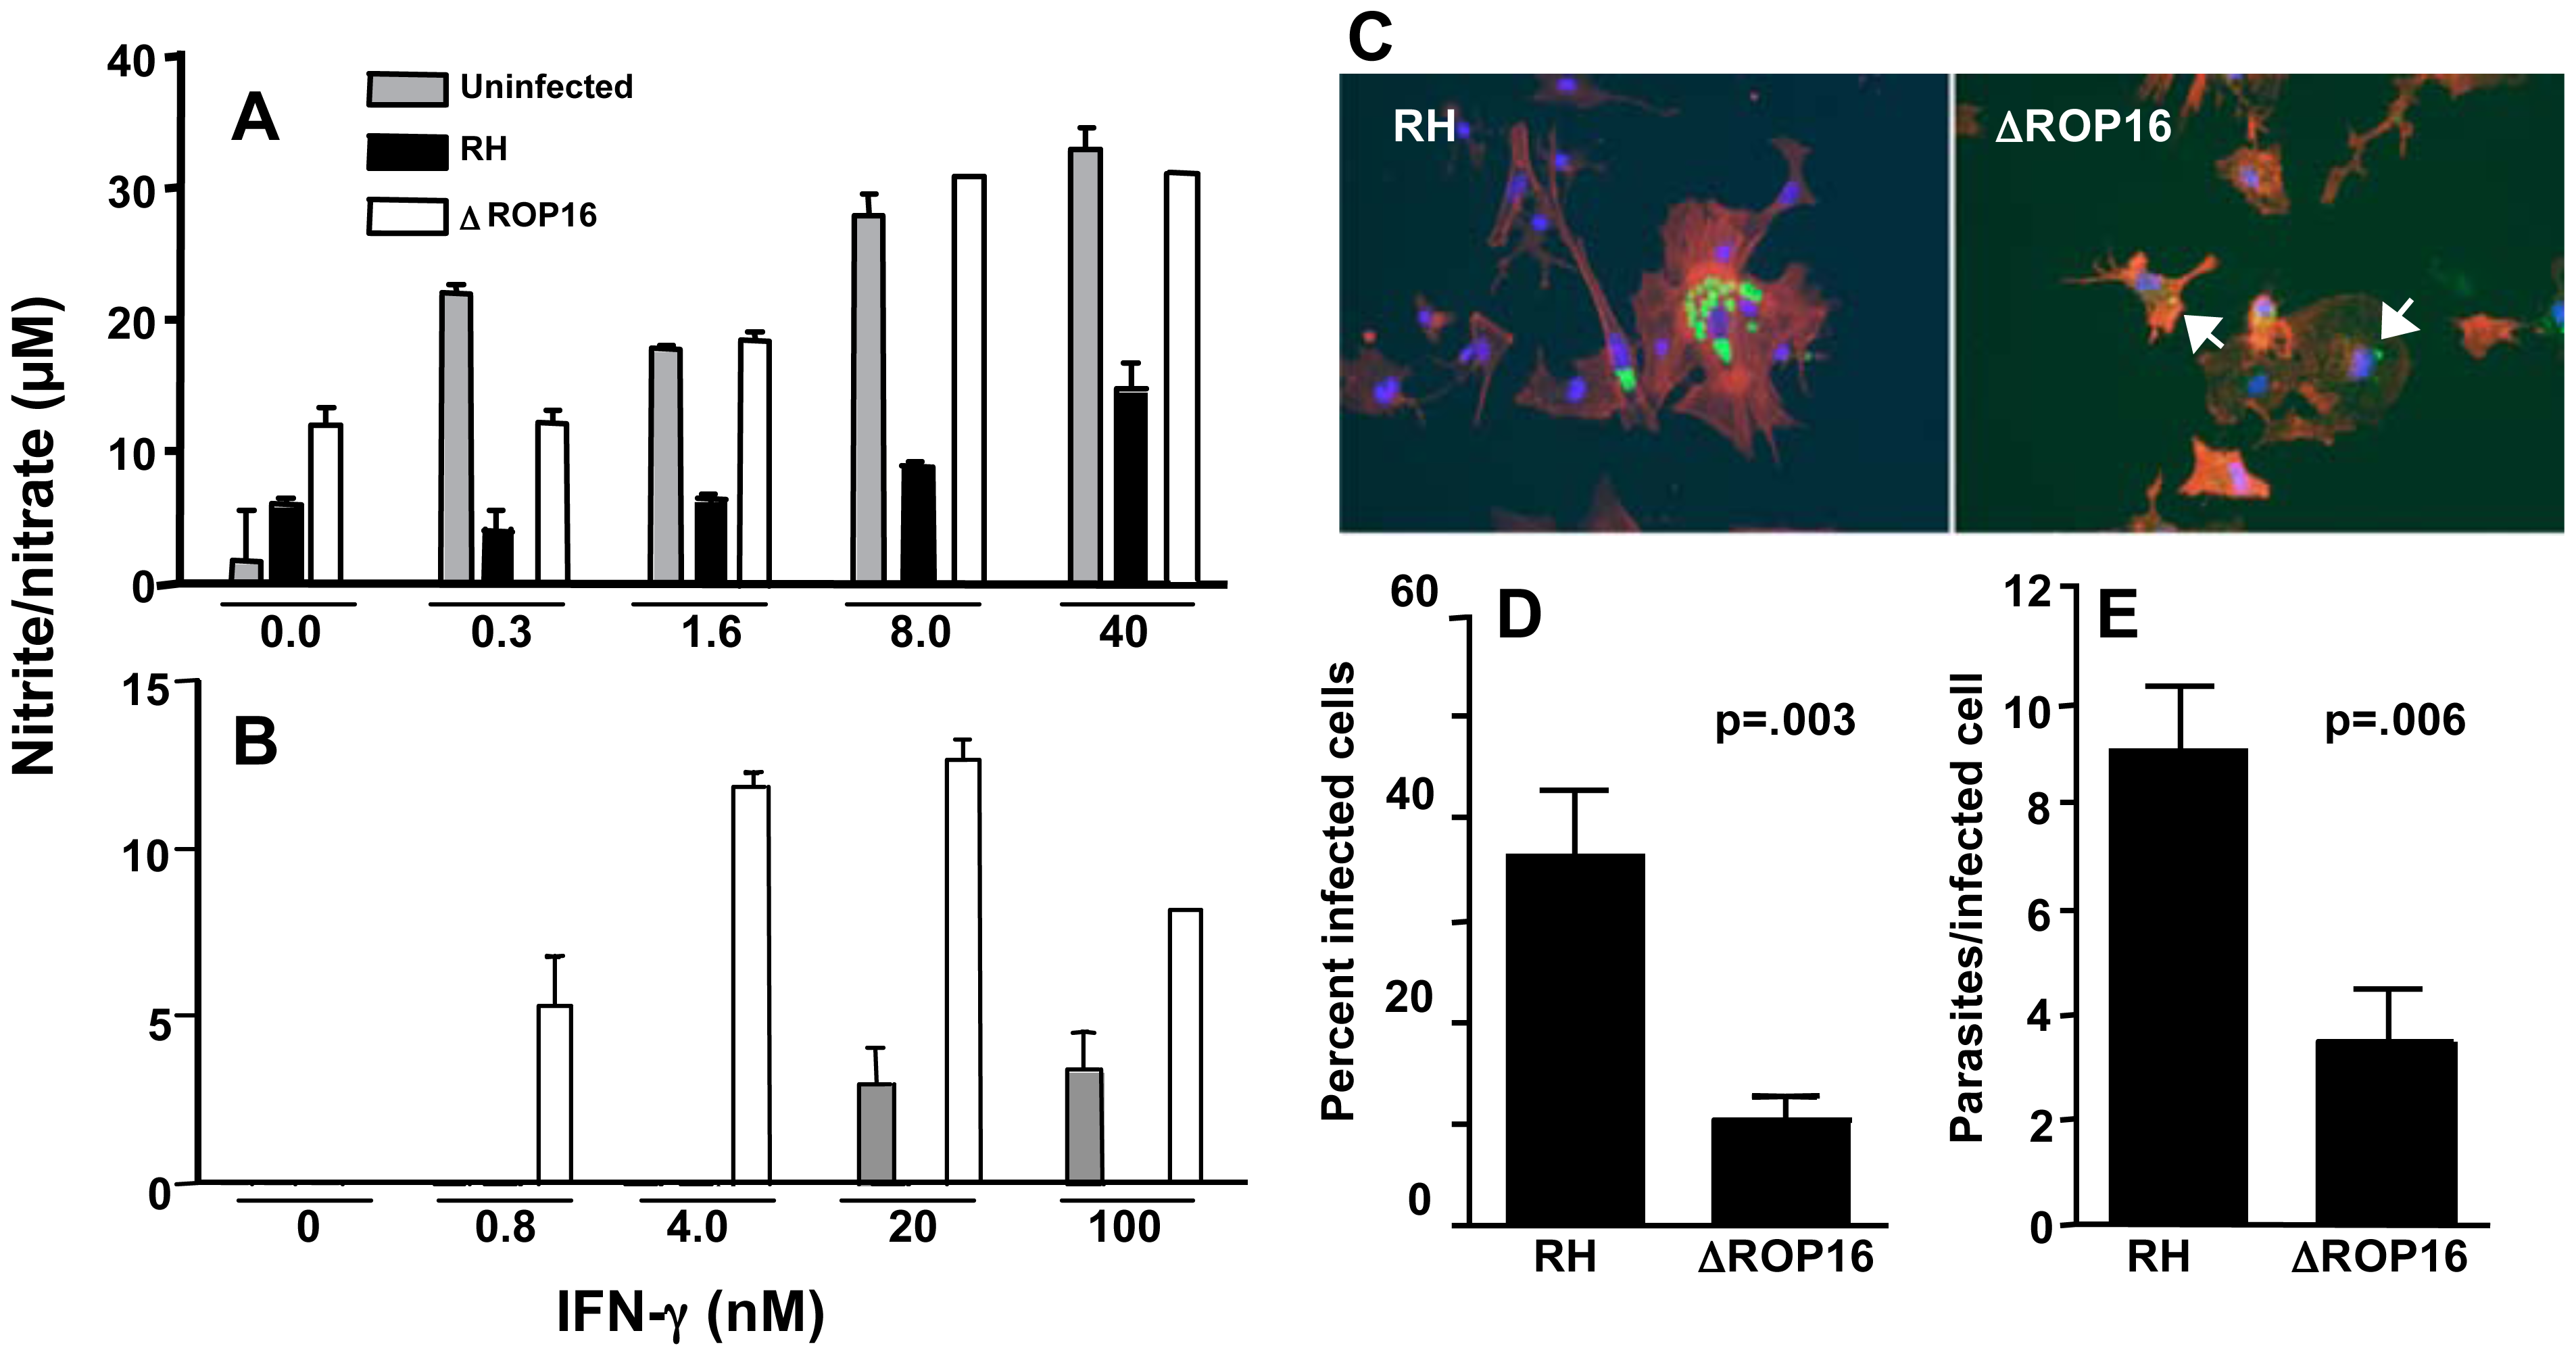 ΔROP16 tachyzoites do not inhibit IFN-γ primed NO production in microglial cells and ΔROP16 parasites potentiate production in astrocytes.